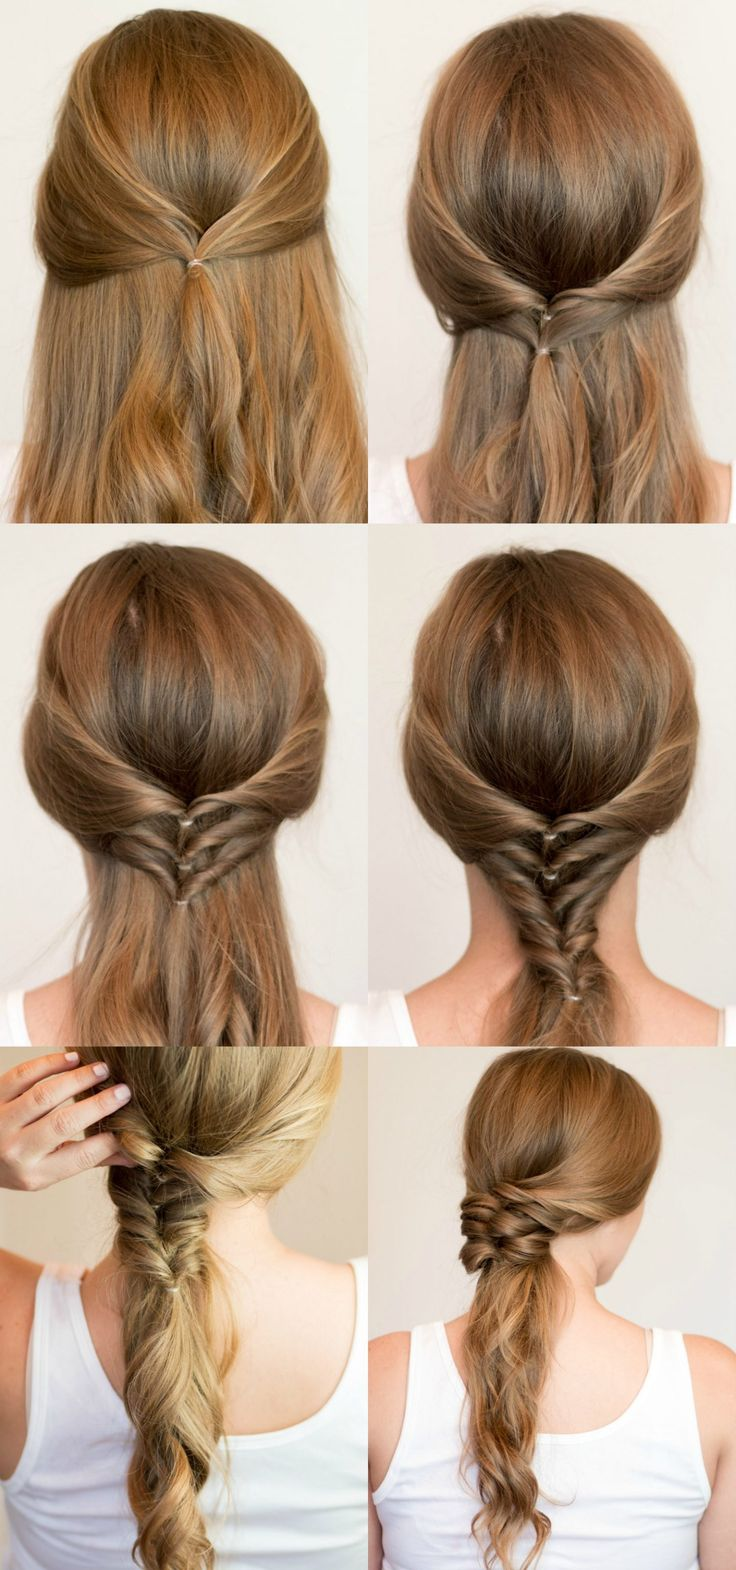 Faux Braided Ponytail hair tutorial | 4 Easy heatless hairstyles for long hair that don't require hair styling skills or braiding! Learn how to create a faux braided ponytail, messy faux fishtail braid, twisted half-up, and messy braided bun in these easy hair tutorial by Orlando, Florida beauty blogger Ashley Brooke Nicholas! #MyHCLook sponsored by Hair Cuttery! | easy hairstyles, no-heat hairstyle, faux braids, faux braid tutorial, how to braid your hair, fishtail braid, long dirty blonde…